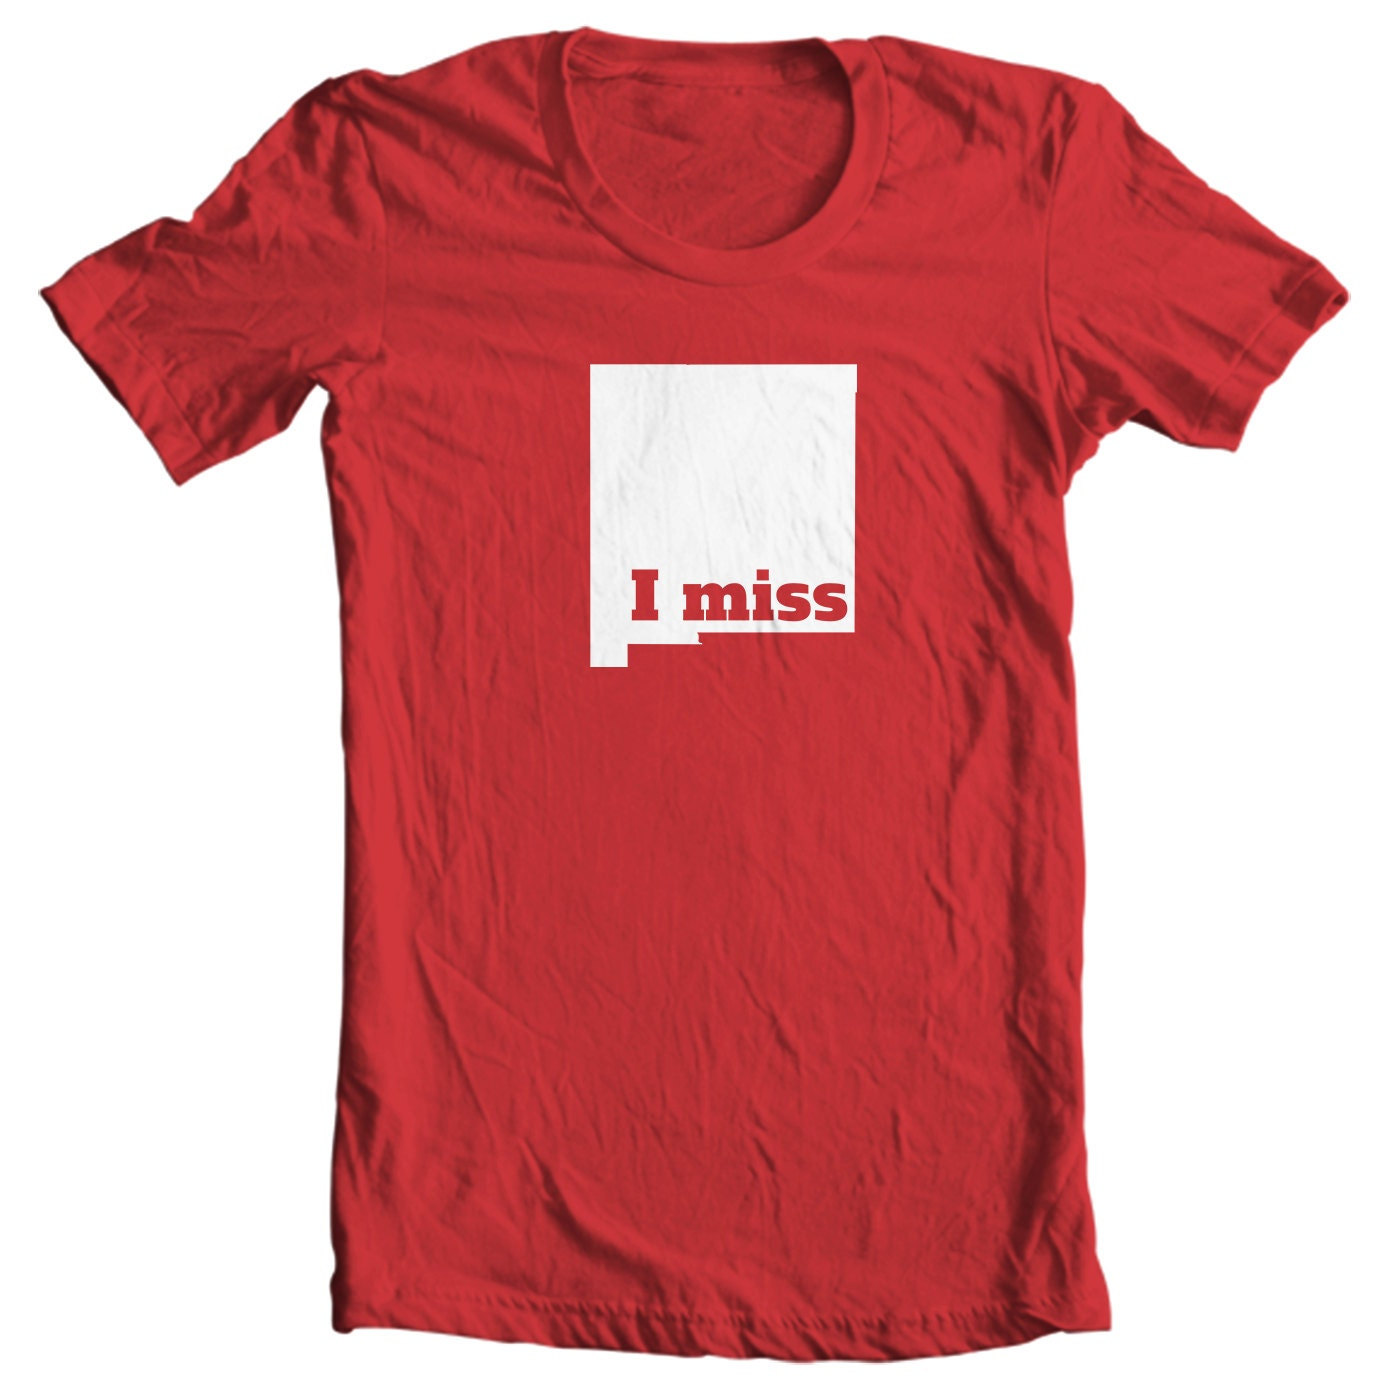 New Mexico T-shirt - I Miss New Mexico - My State New Mexico T-shirt